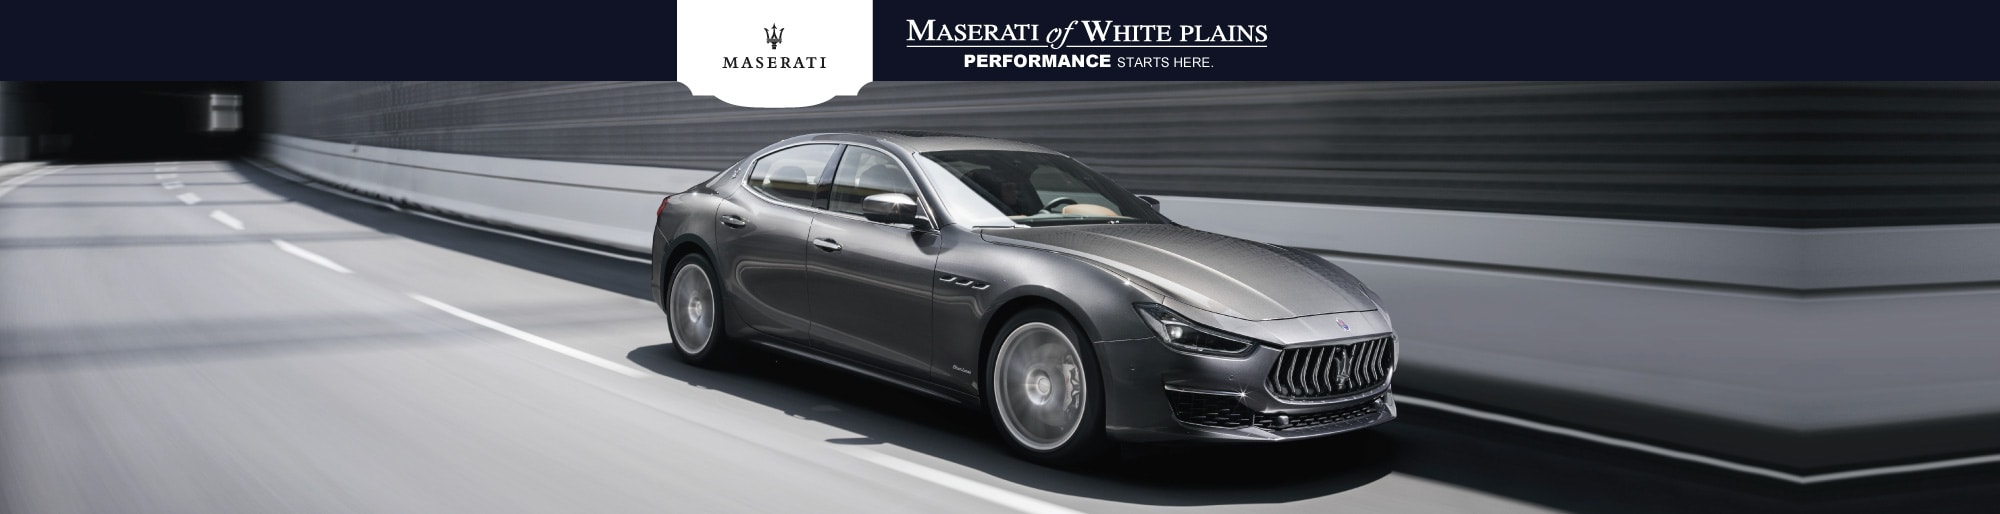 Maserati Lease Deal Image